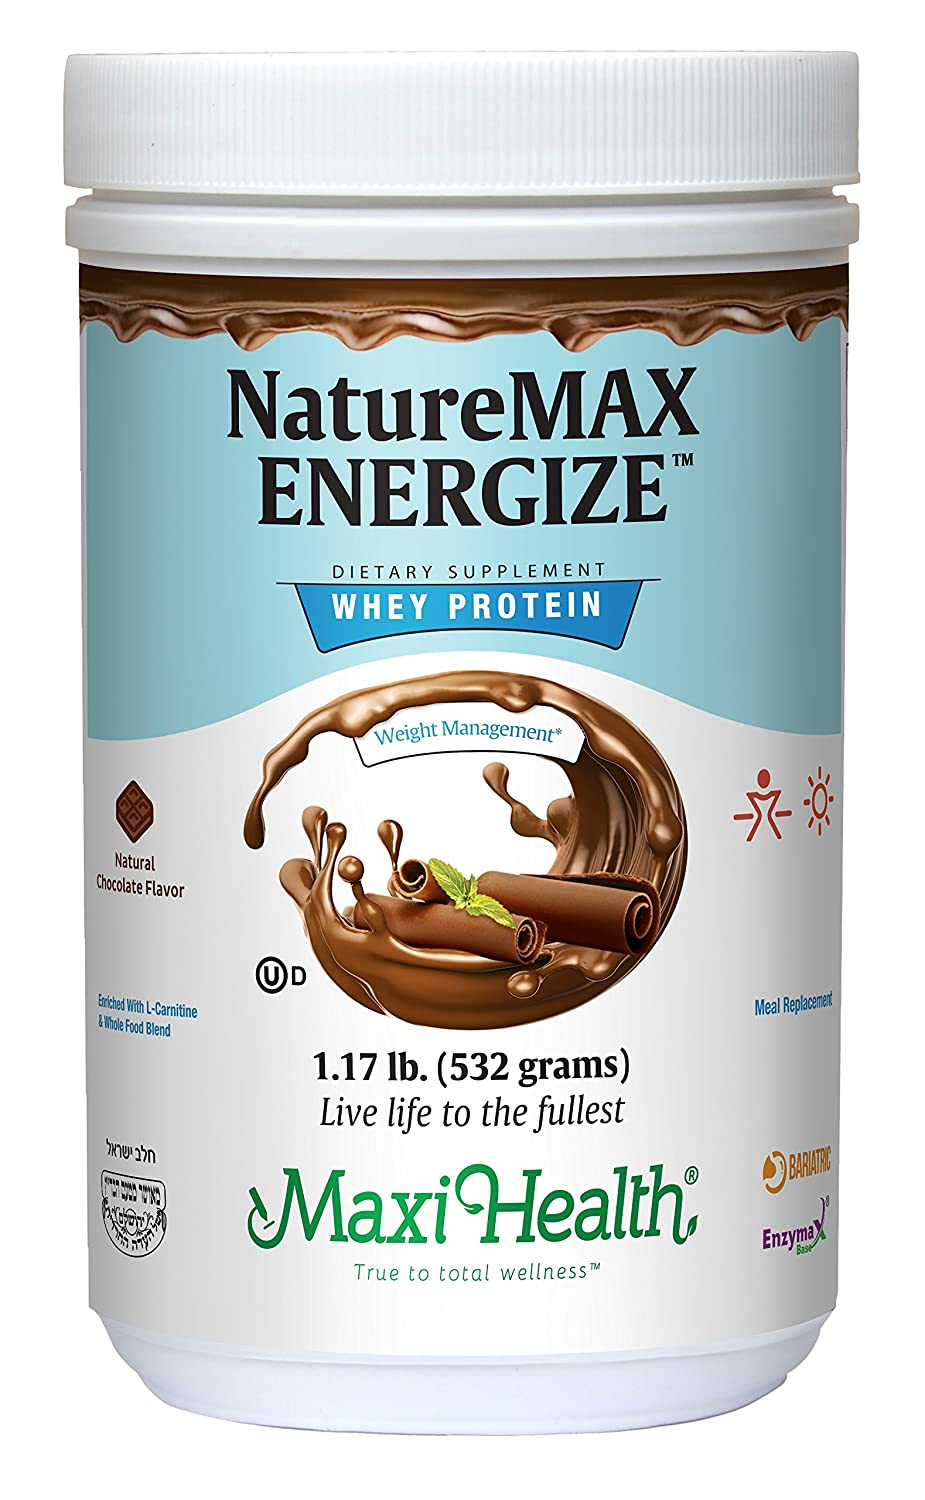 Naturemax Energize – Whey Protein Powder Meal Replacement multivitamin – 25g Pure Proteinper Serving Natural Chocolate Kosher